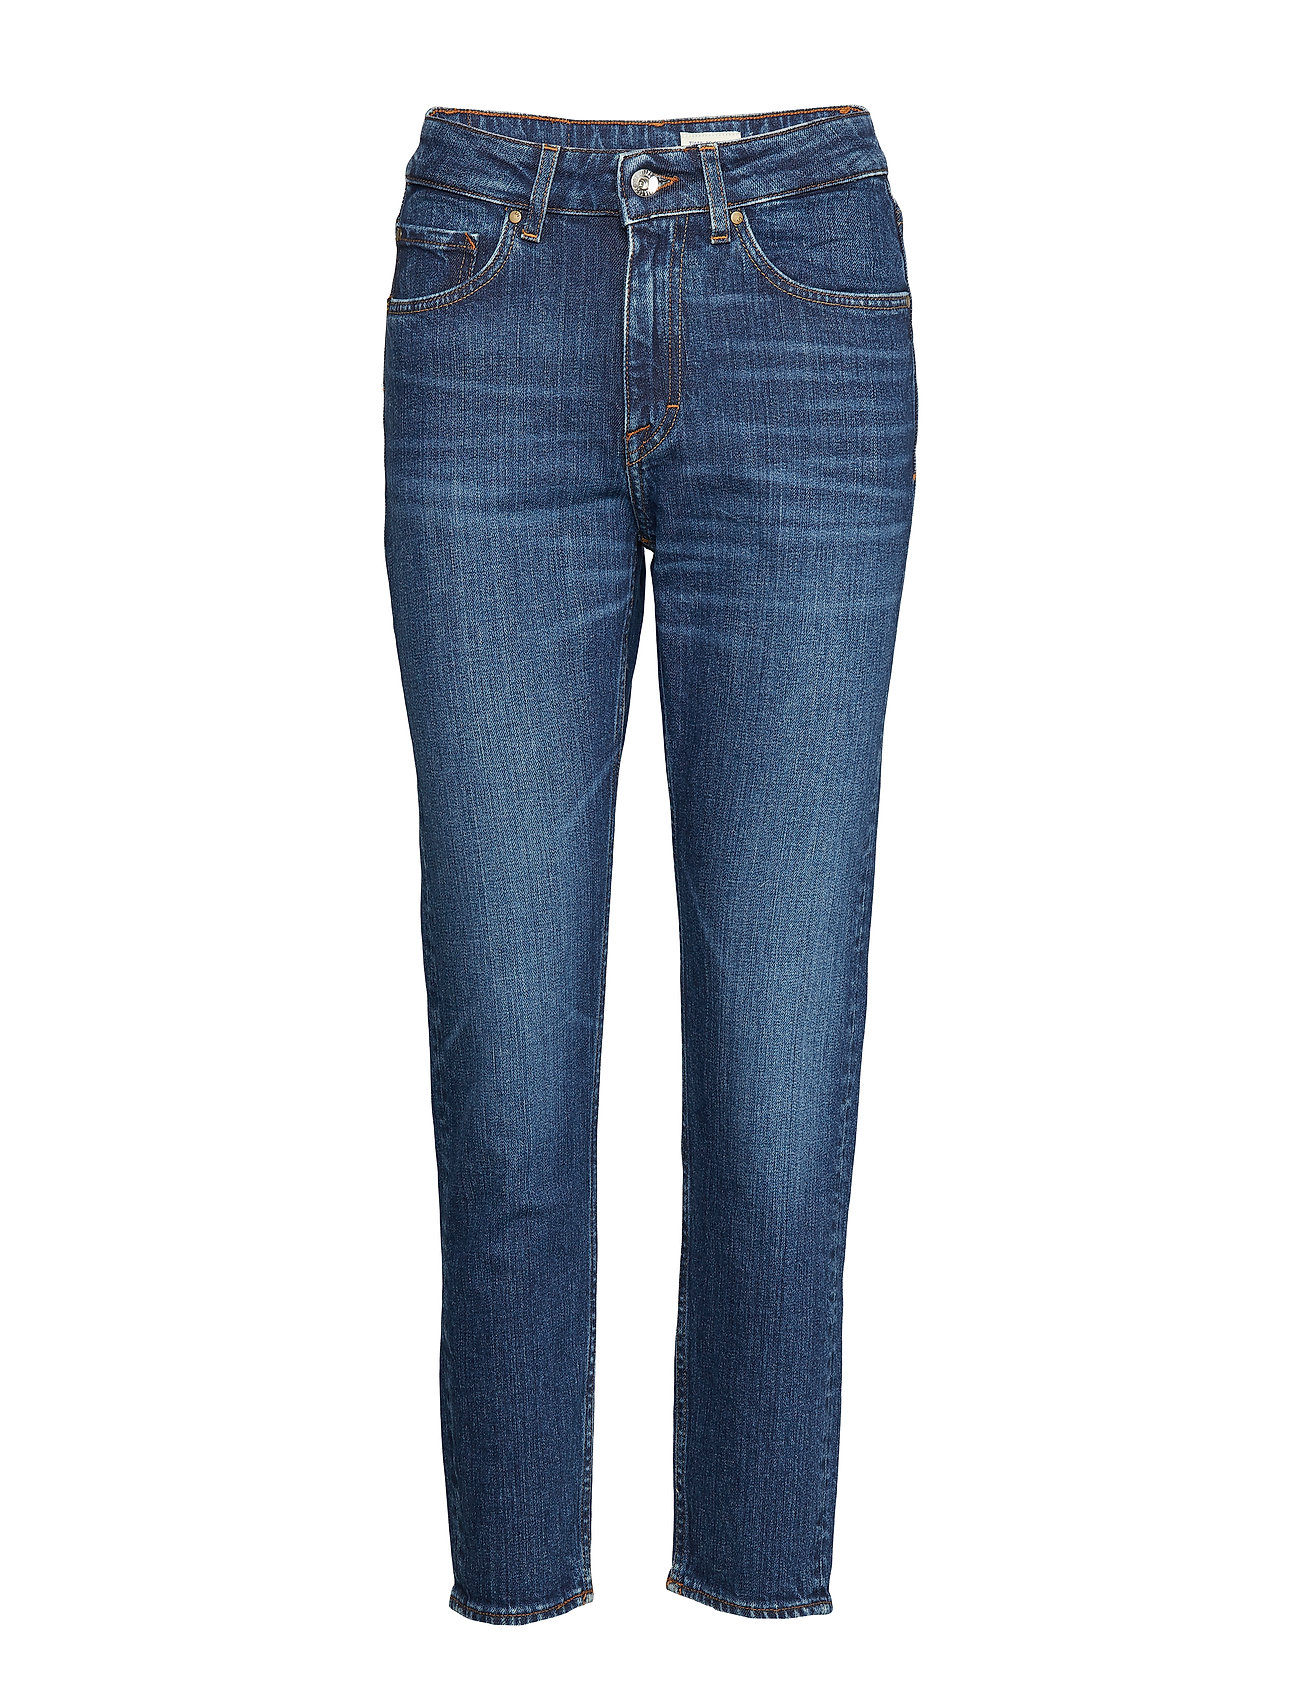 Tiger of Sweden Jeans LEA - MEDIUM BLUE